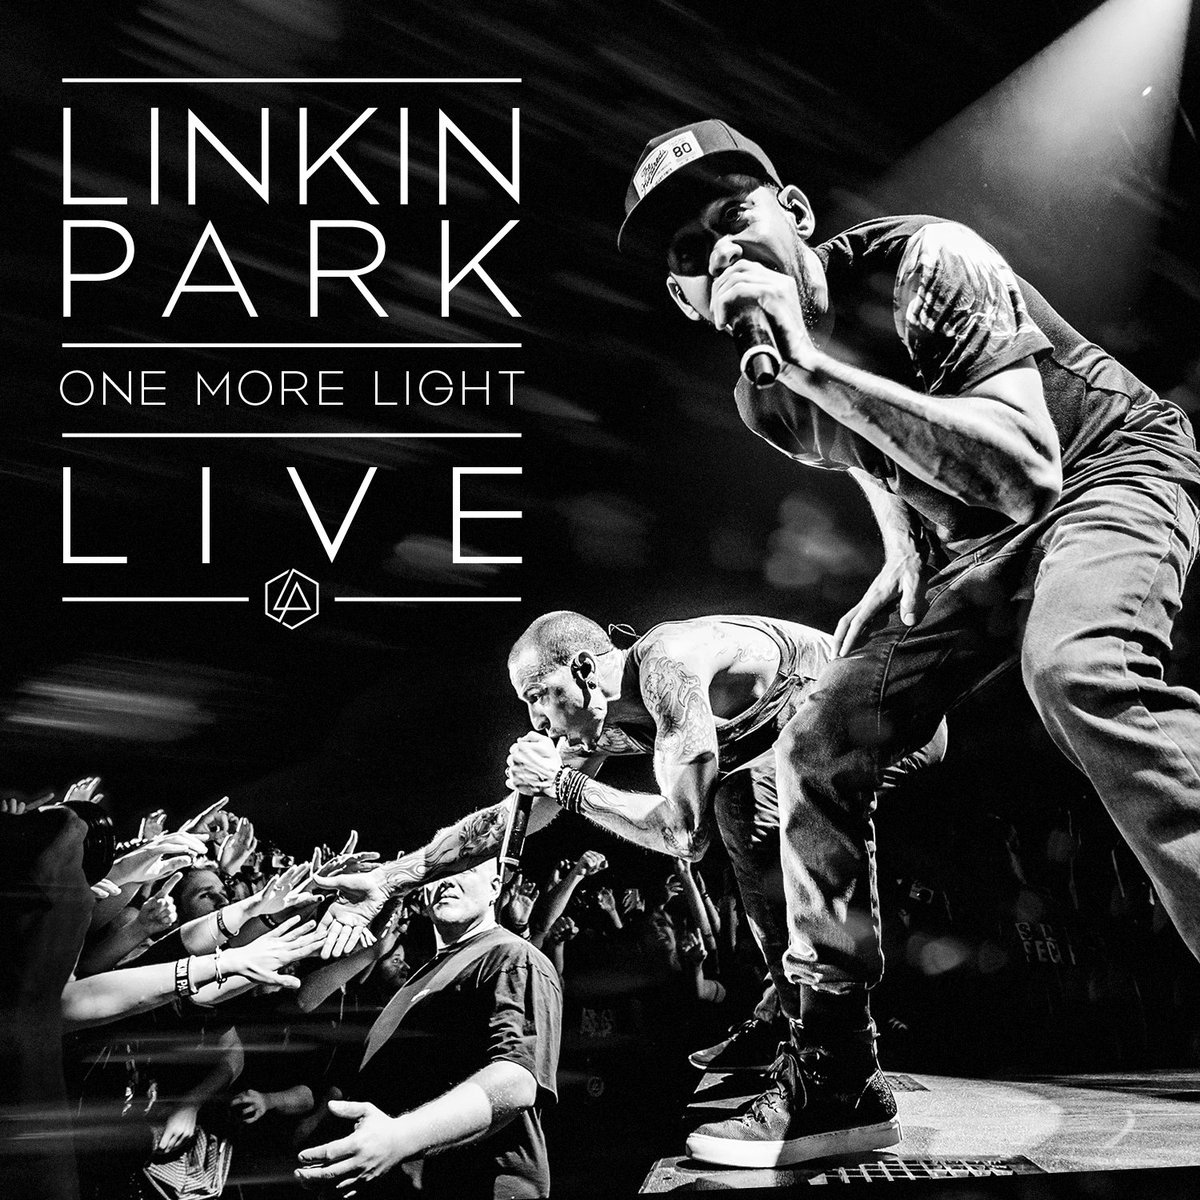 #OneMoreLight Live. Stream / download the album - available everywhere now: https://t.co/woknEvAYRi https://t.co/zZ0YO3BhIQ